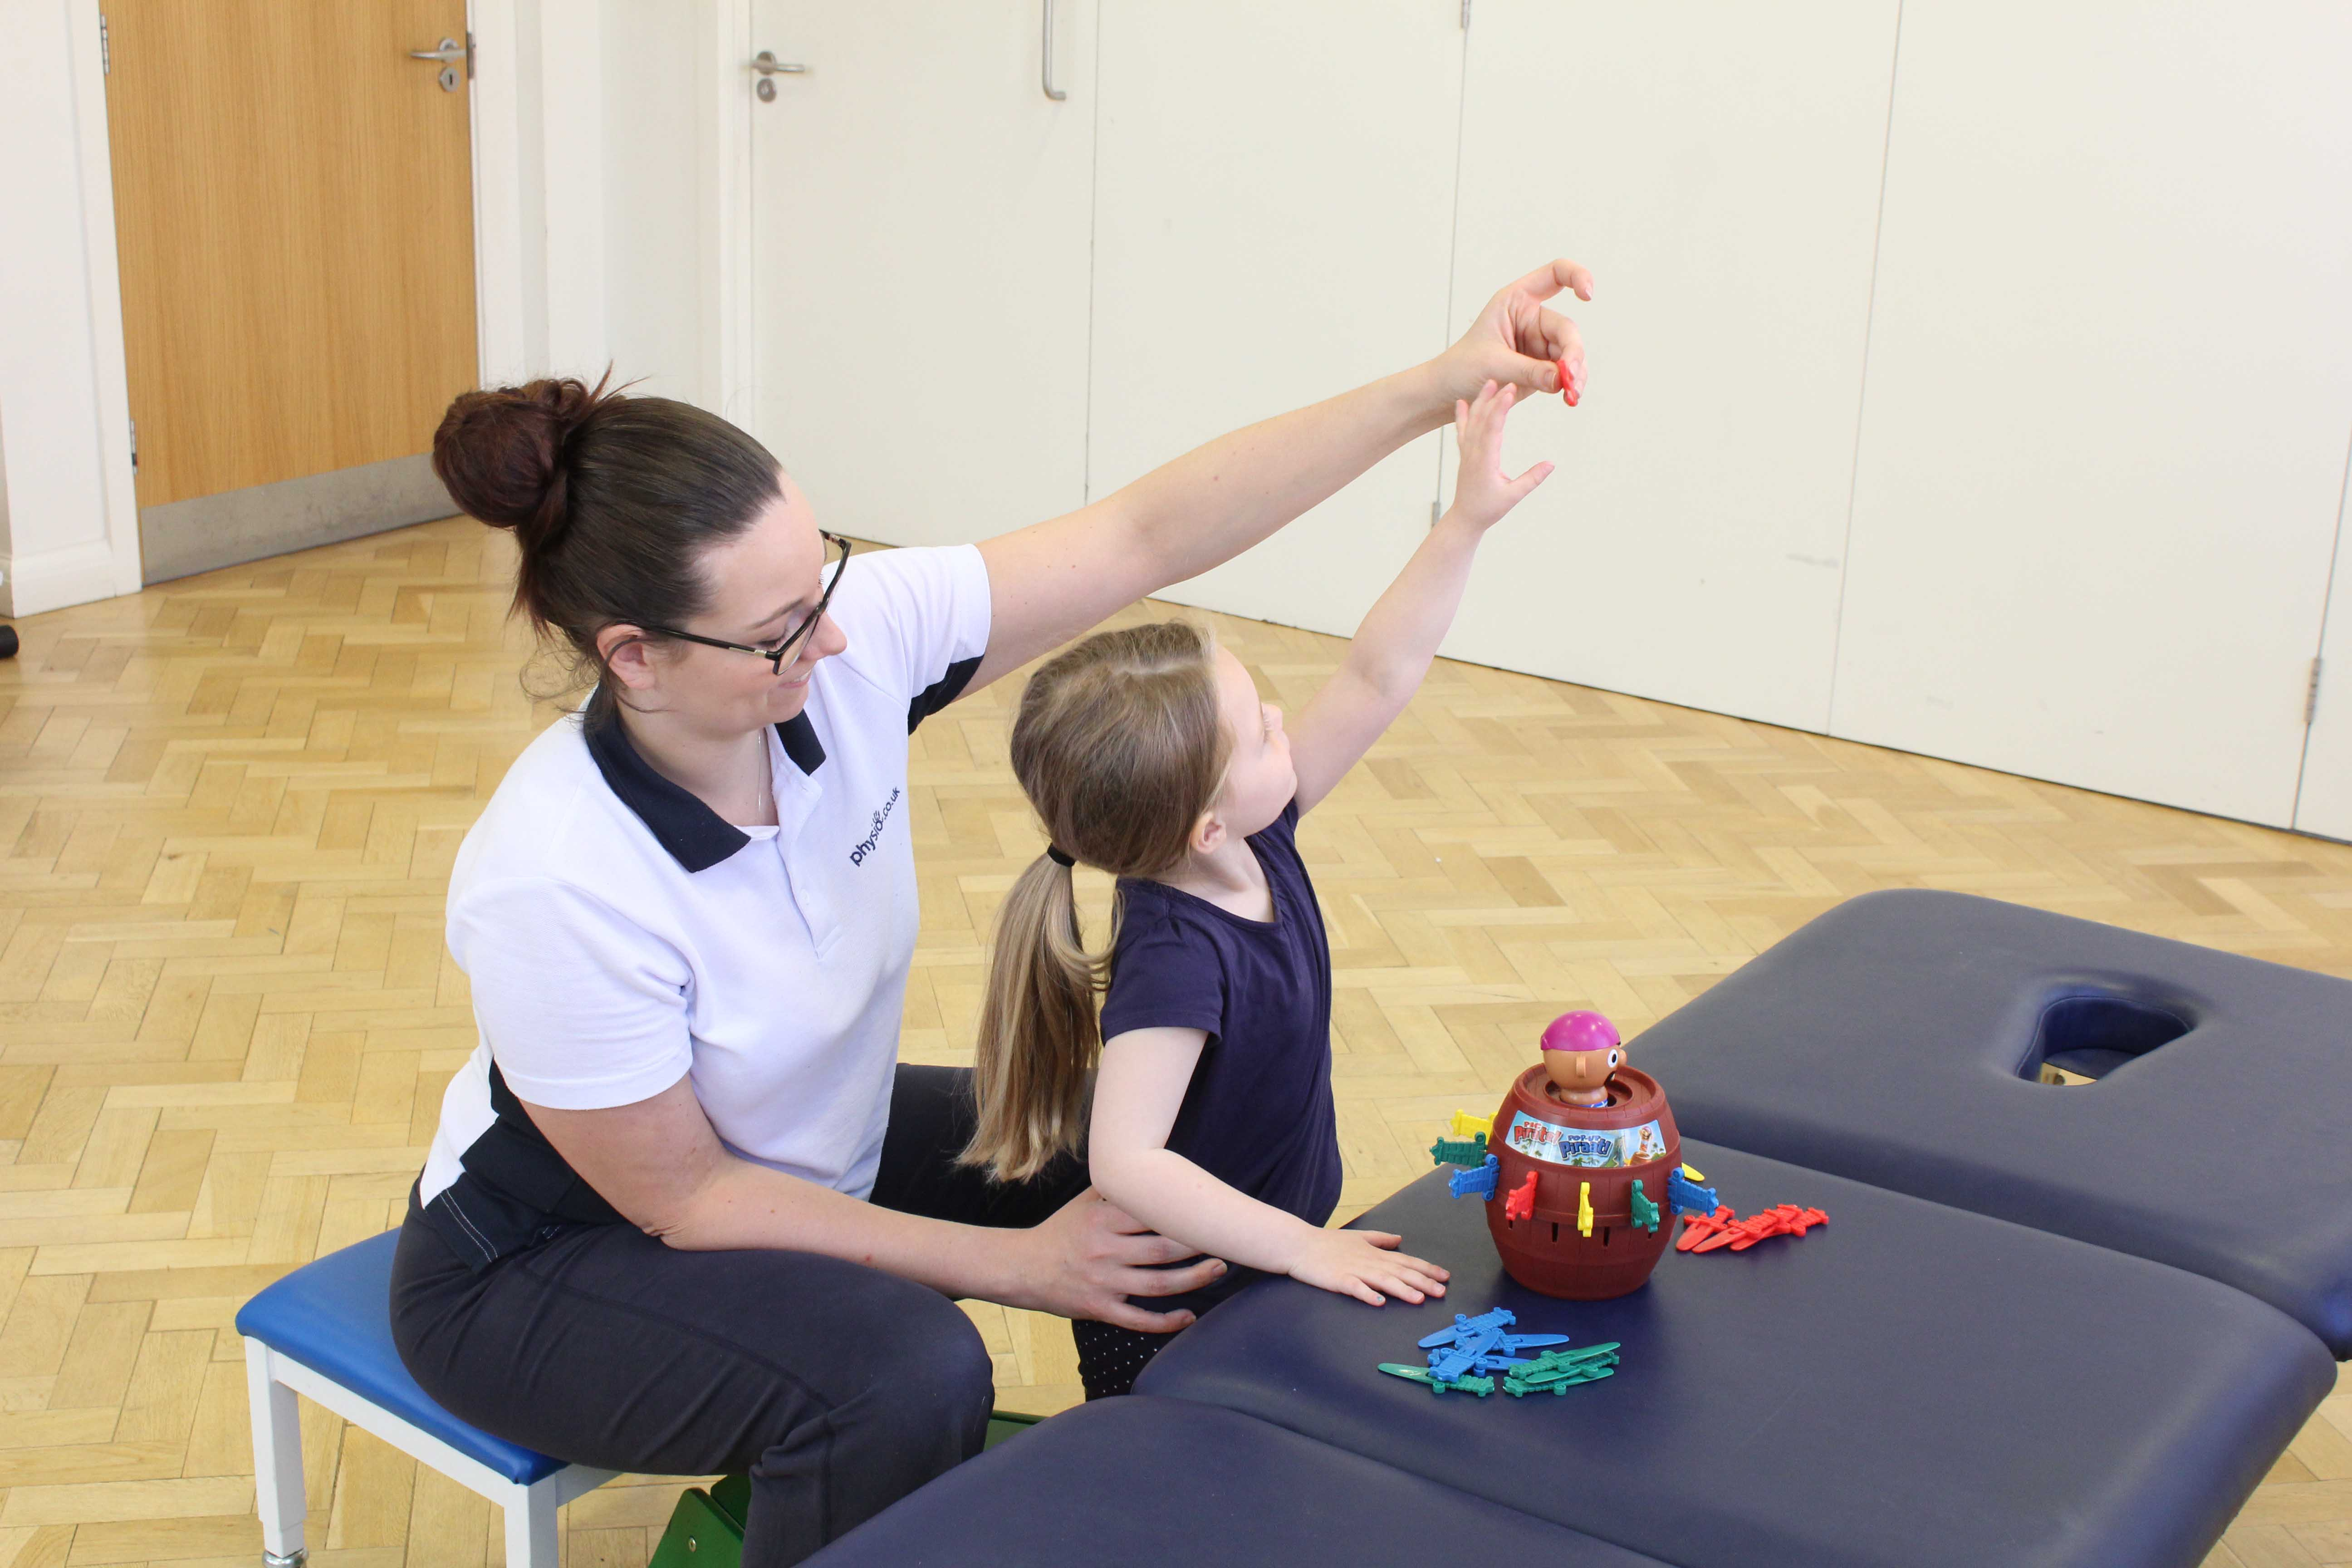 Developing fine motor skills through play activities supervised bya paediatric physiotherapist